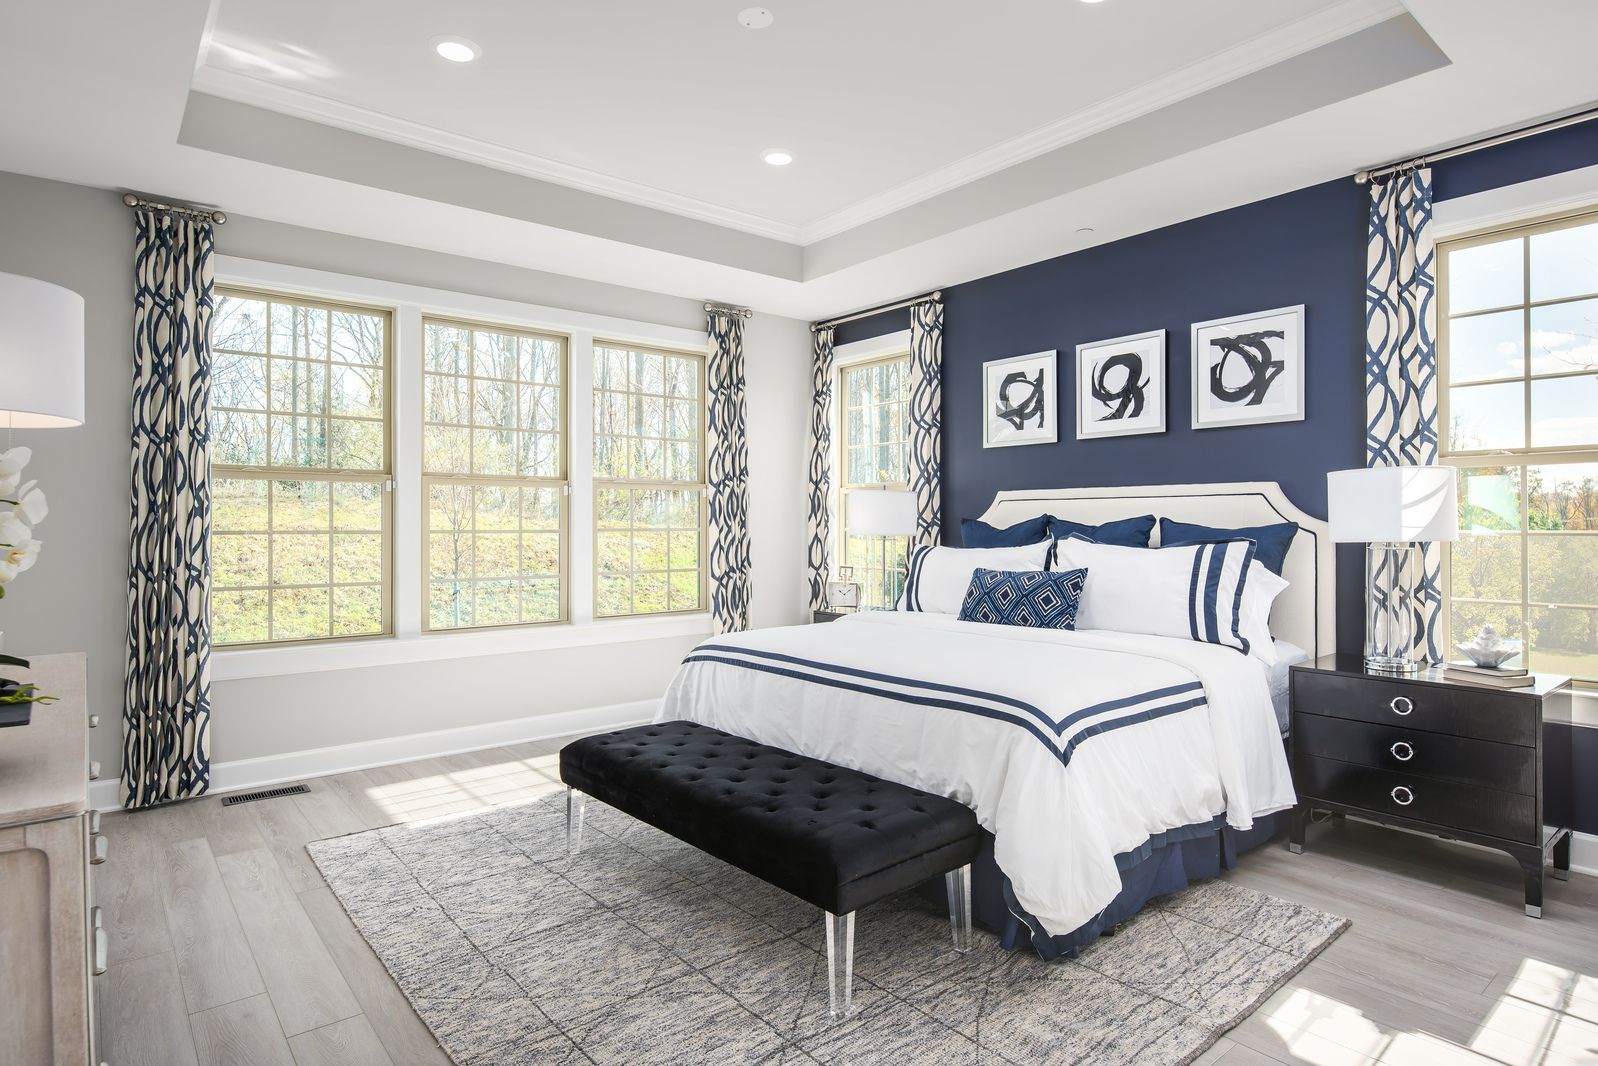 Bedroom featured in the Albright By NVHomes in Washington, MD